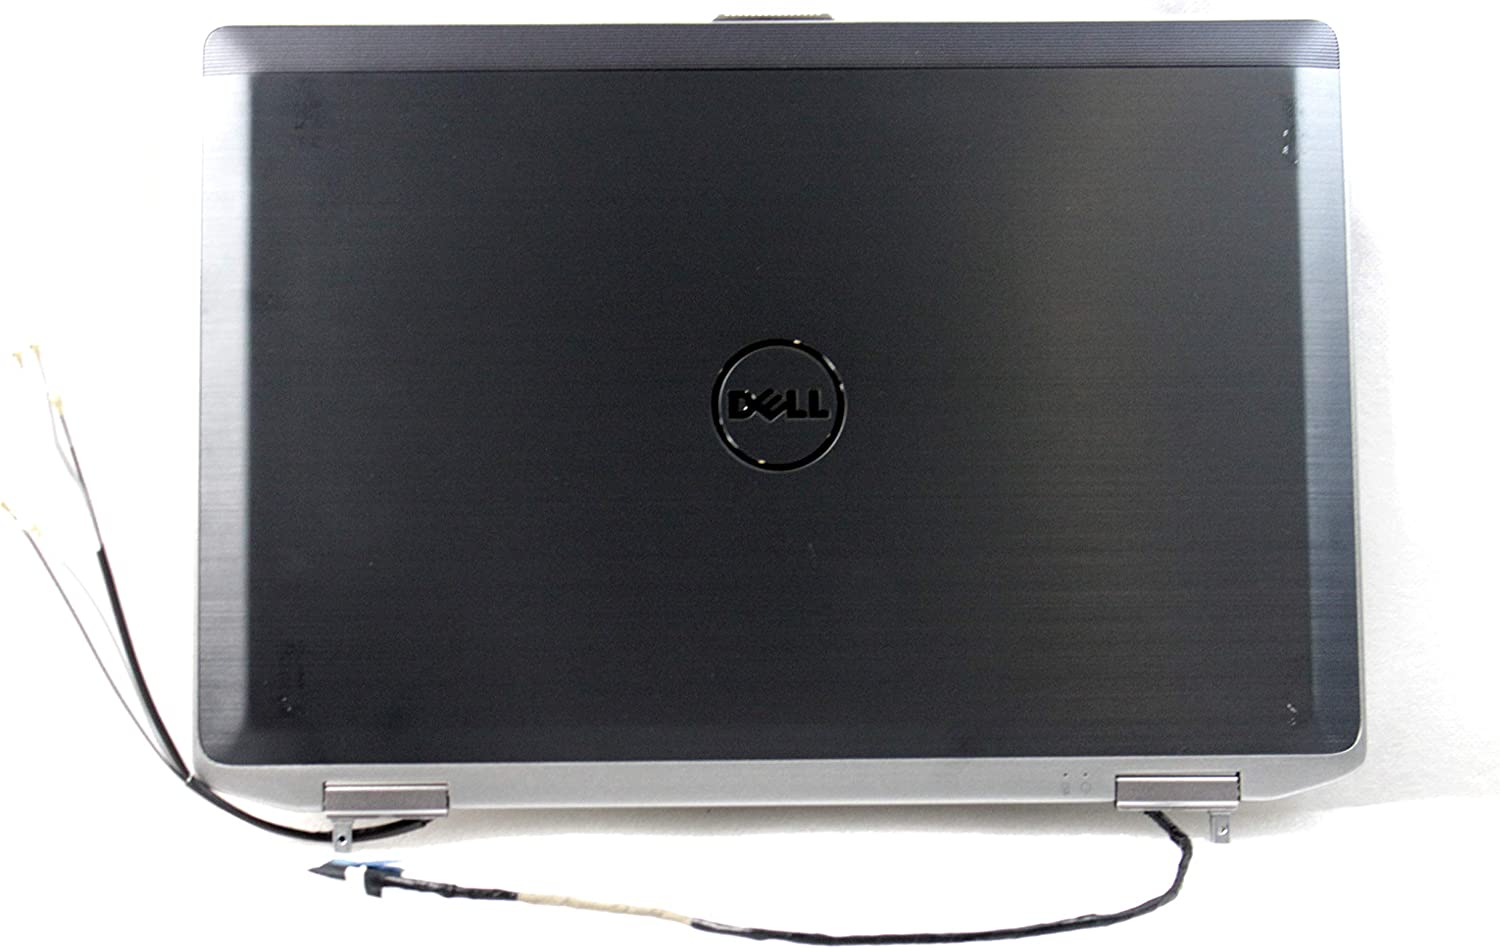 616W2 - Dell Latitude E6420 LCD Back Top Cover Lid Assembly with Hinges - 616W2 - Grade A